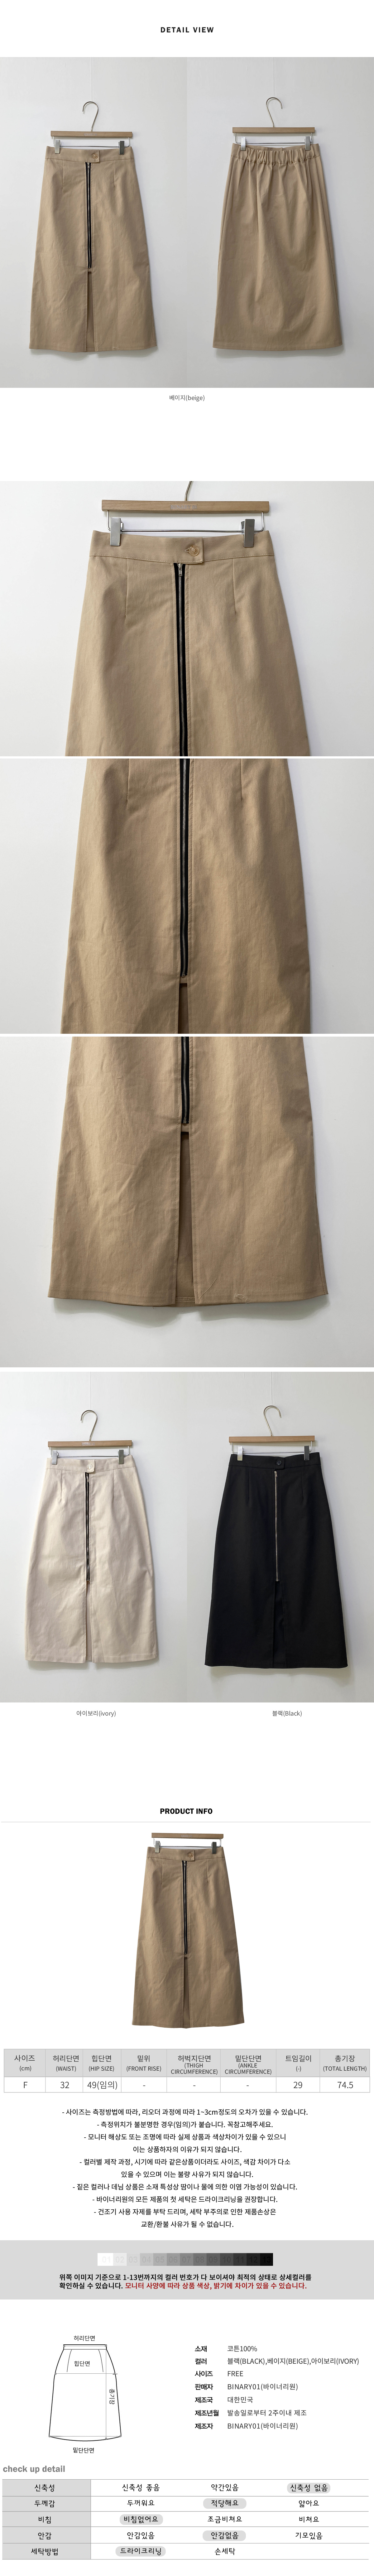 Zip-tipped Awesome Long Skirt